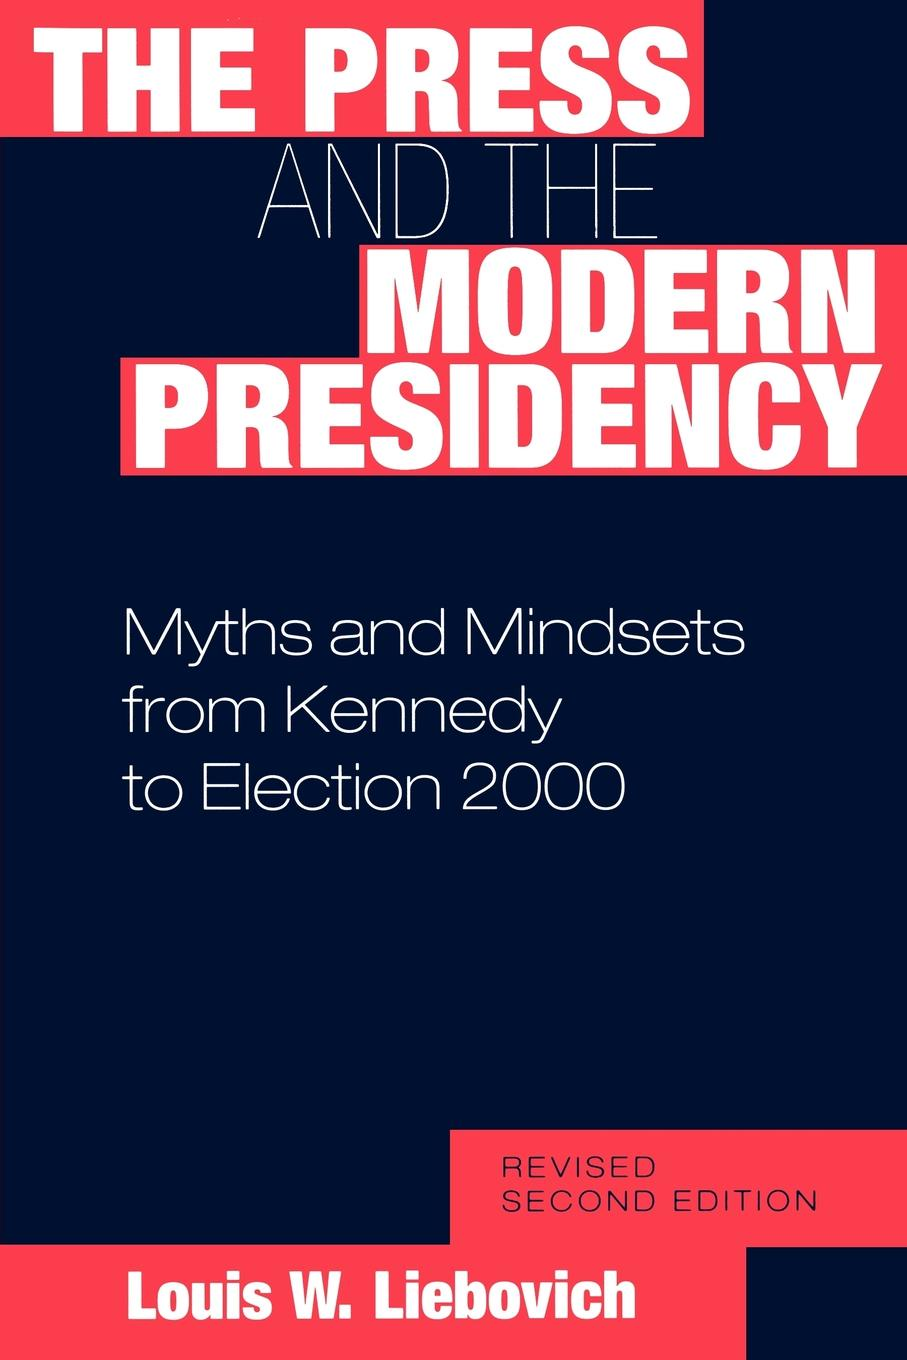 Louis W. Liebovich The Press and the Modern Presidency. Myths and Mindsets from Kennedy to Election 2000, Revised Second Edition myths of modern individualism